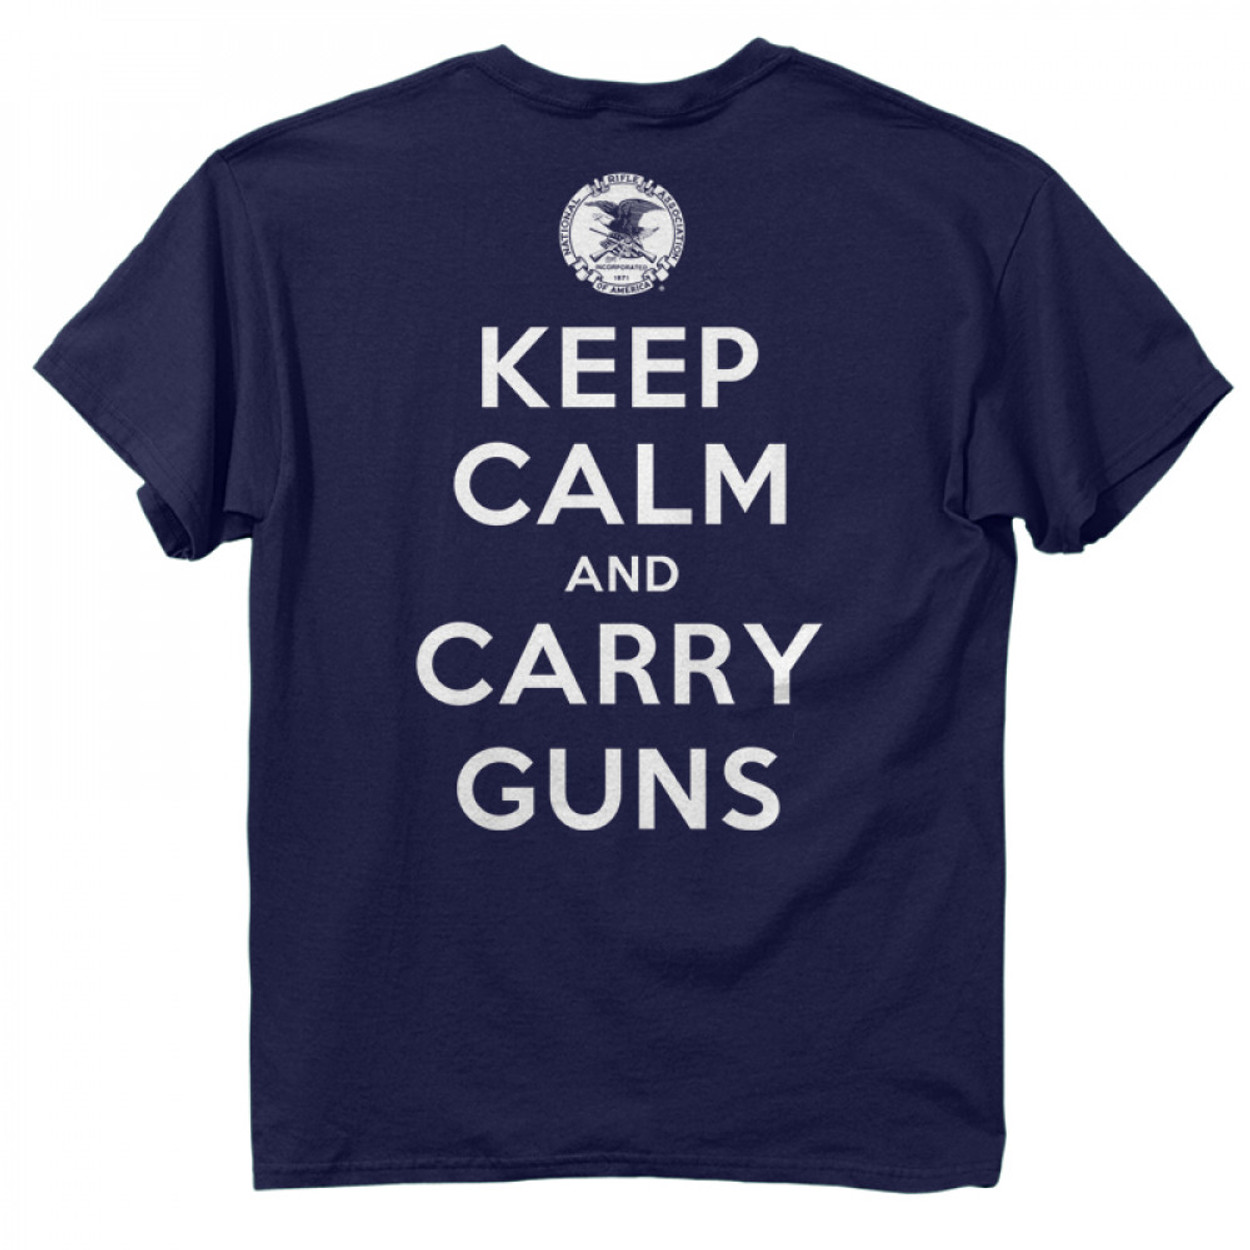 f8842602 Keep Calm Carry T Shirt Personalised - DREAMWORKS